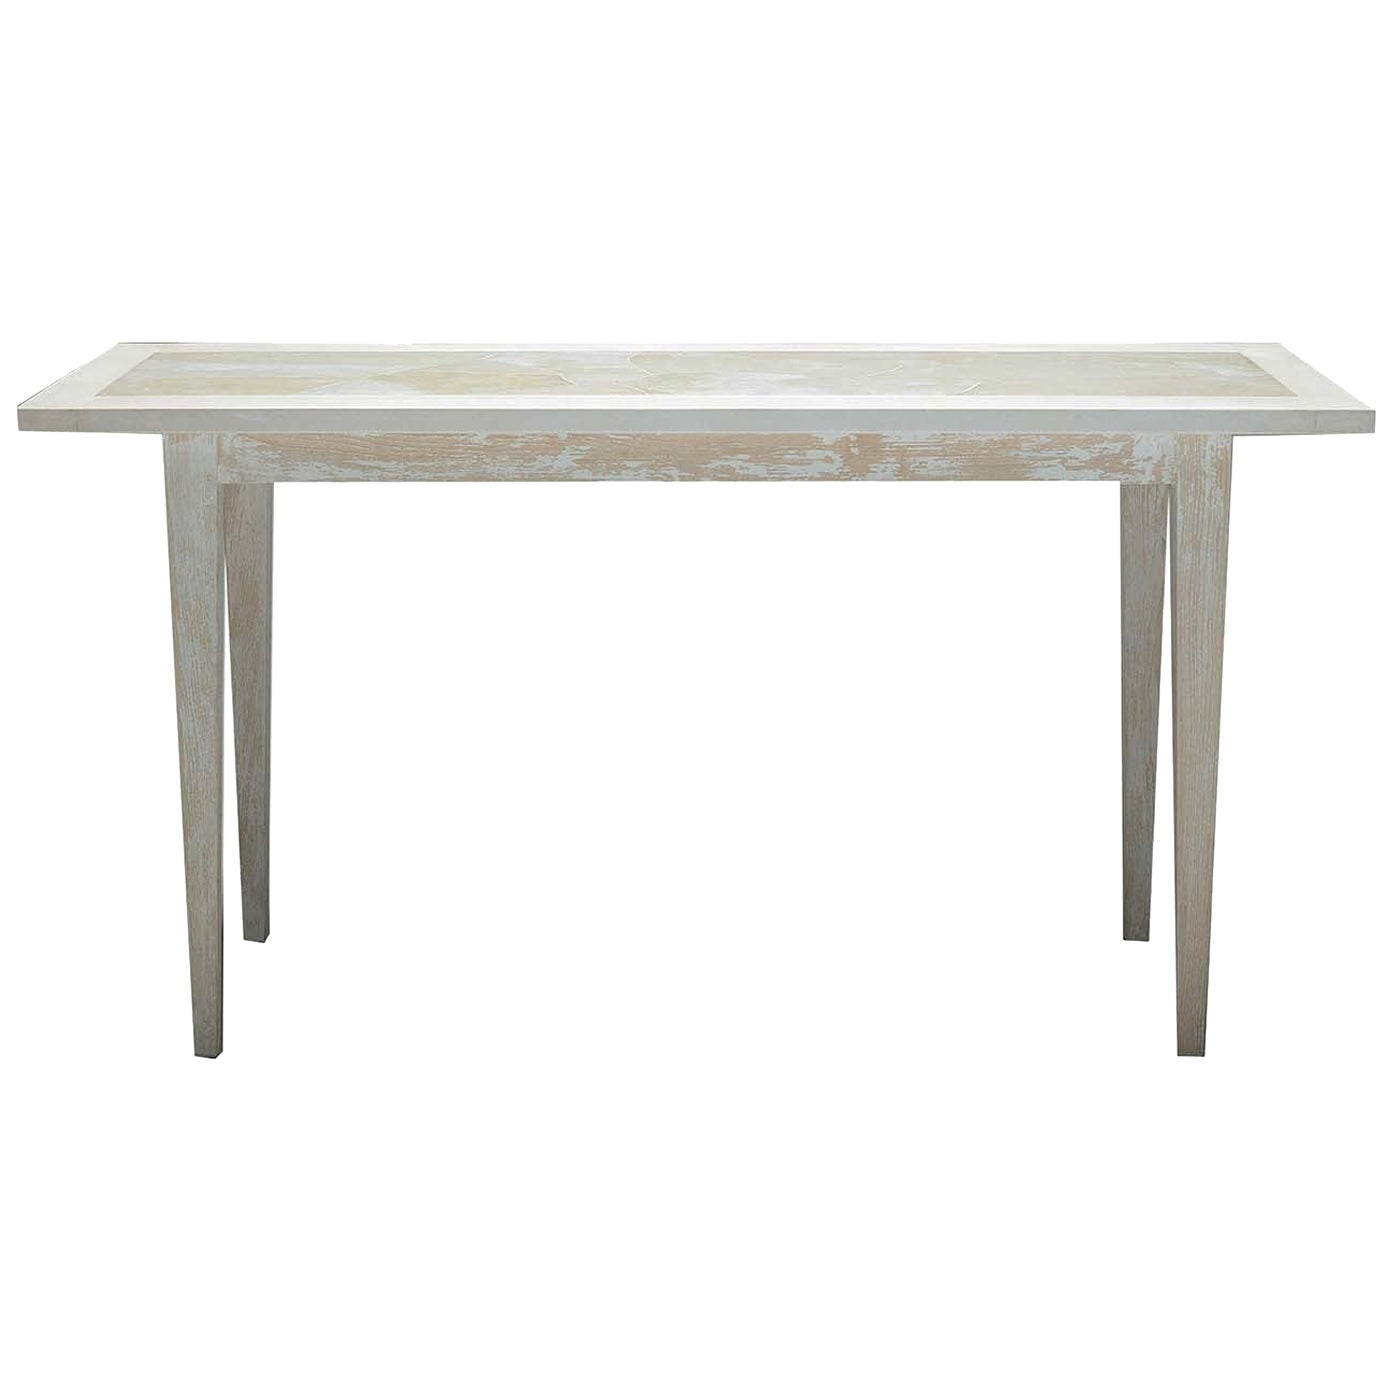 Onyx Country Table